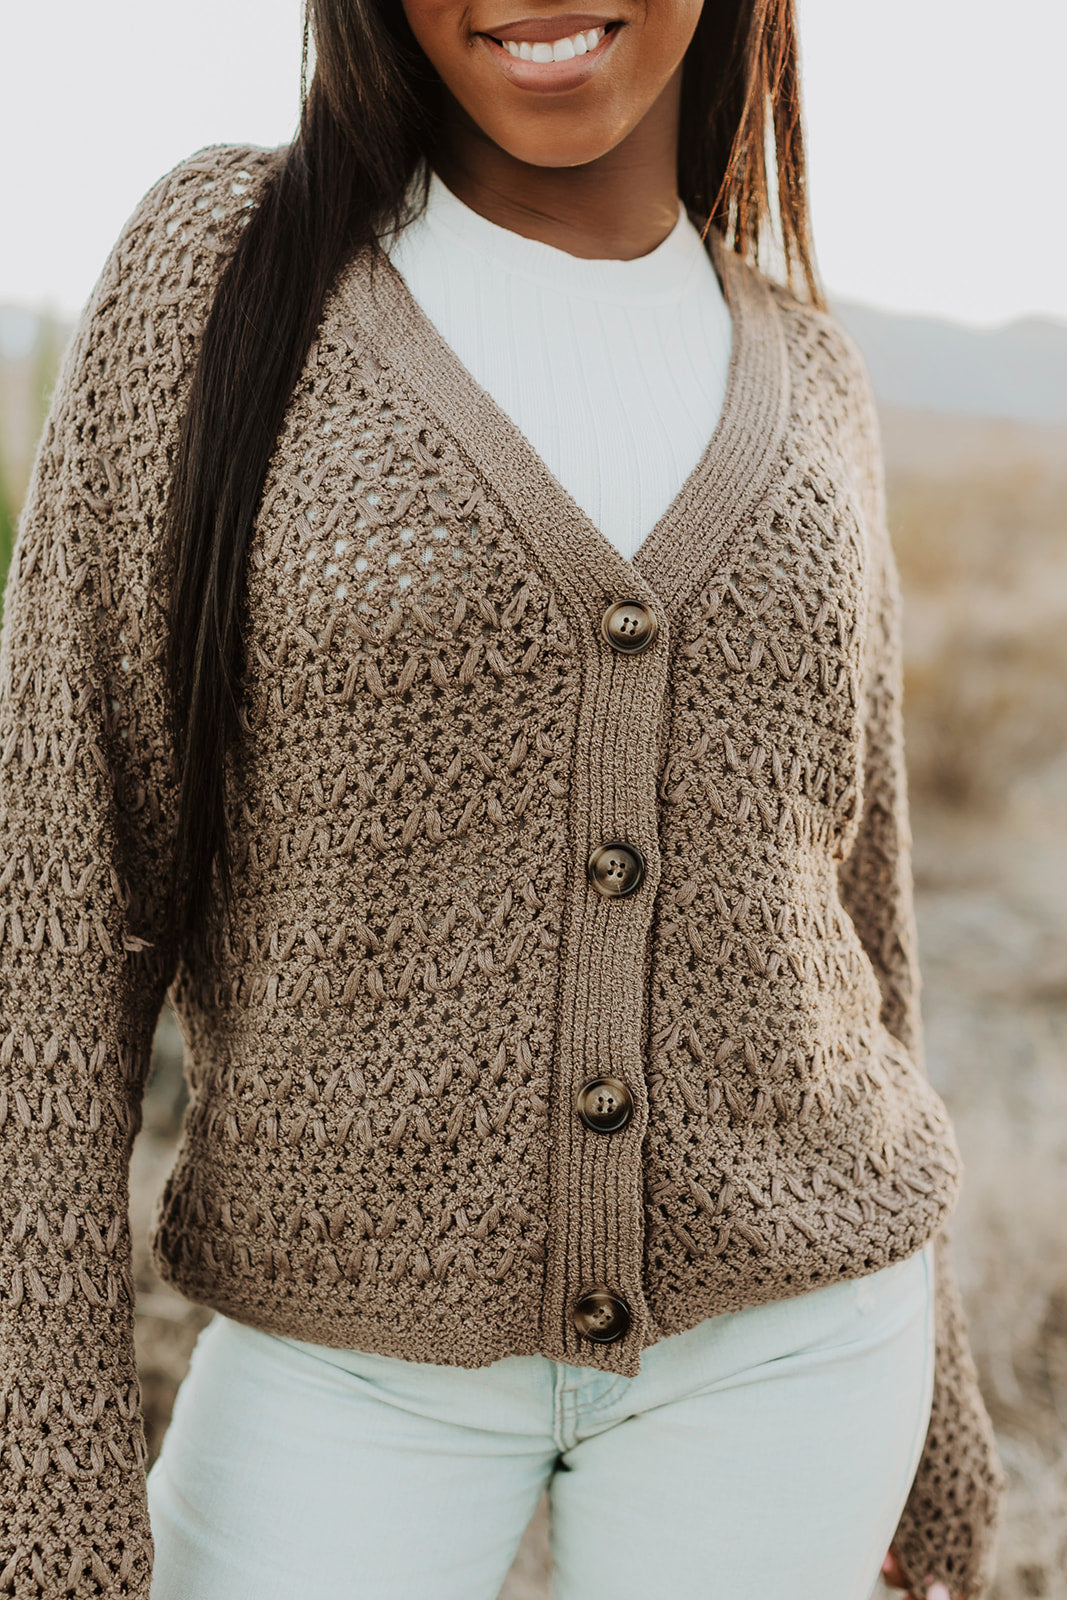 THE AUSTIN KNITTED CARDIGAN IN MUSHROOM